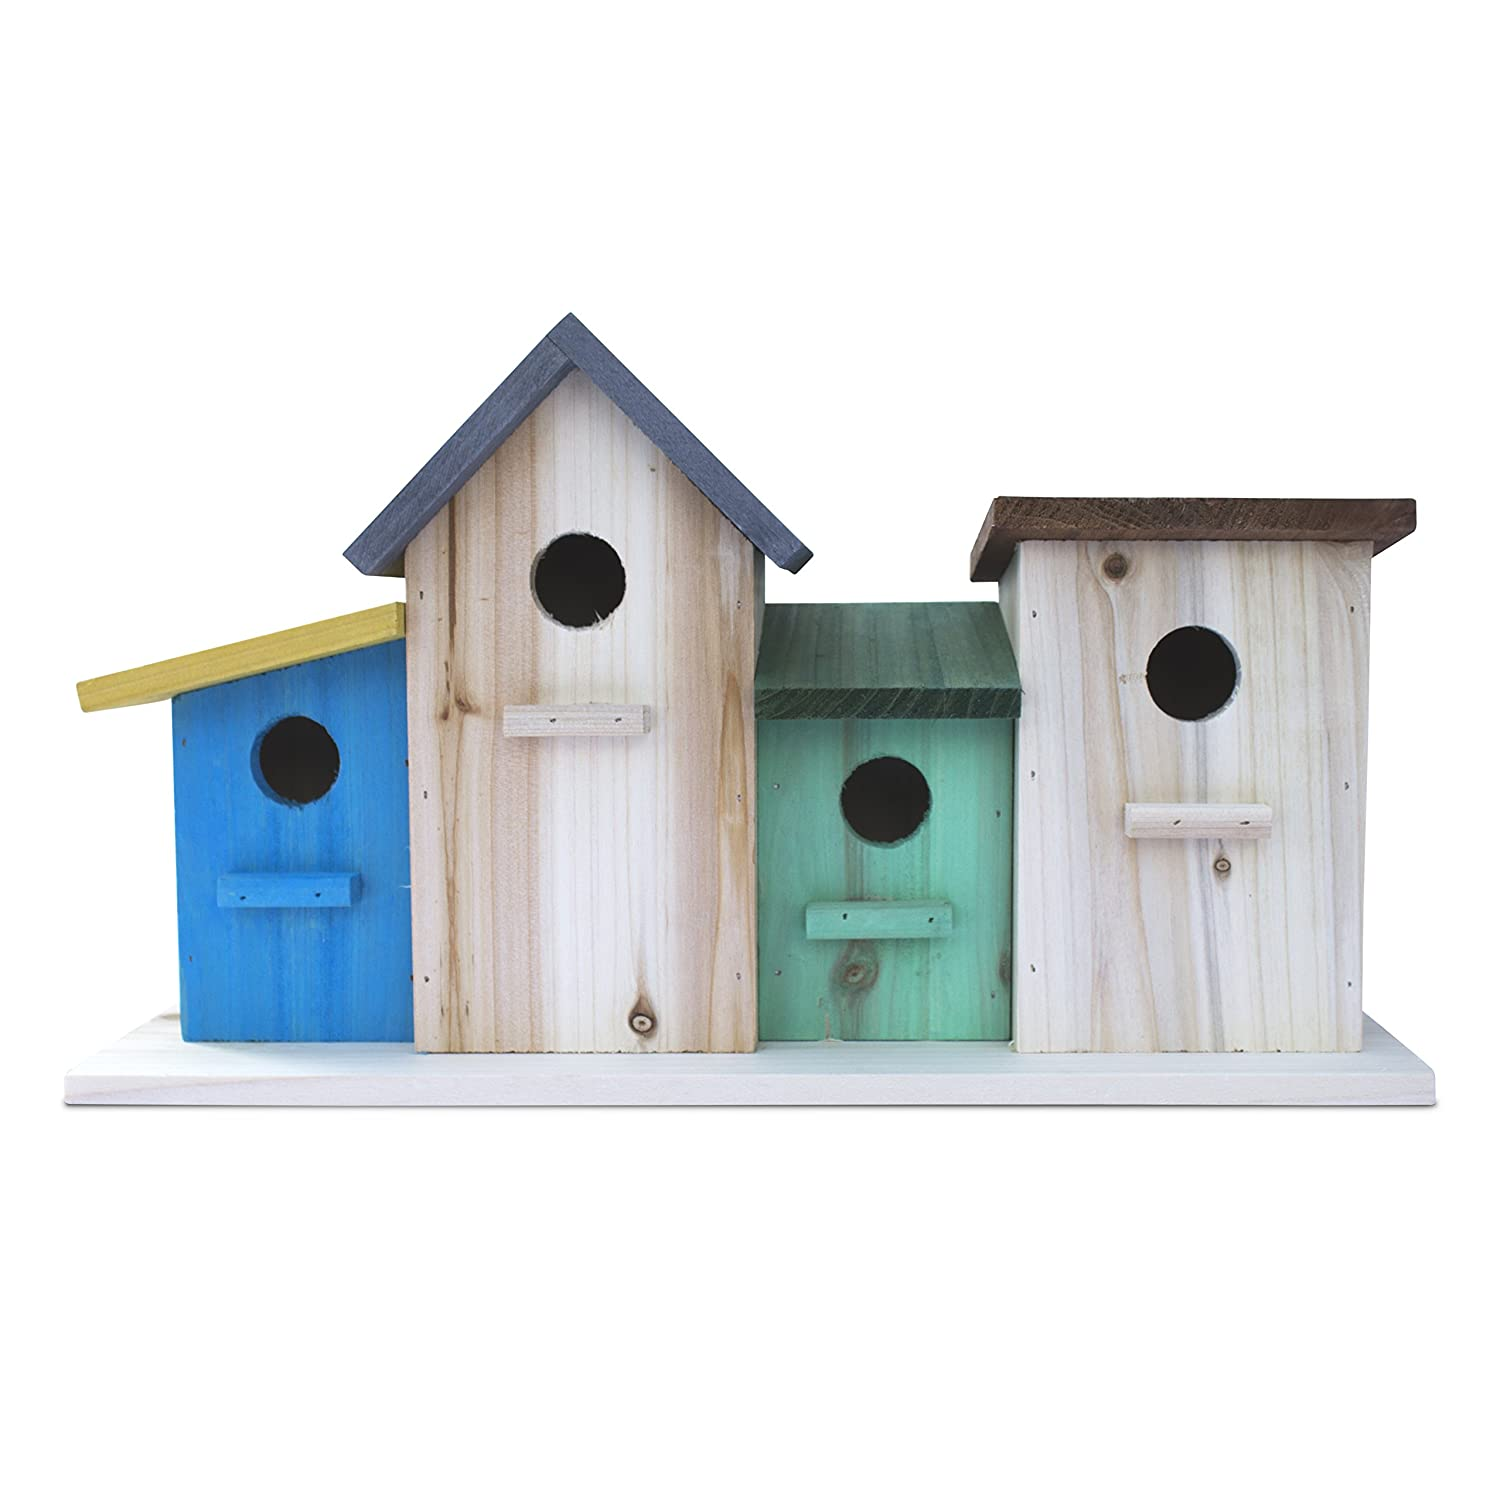 3 Hole Bird House for Outside / Indoors / Hanging | Kits for Children and Adults | Decorative Birdhouse and Home Decoration | Outdoors Feeder for Birds, Bluebirds, Wrens and Chickadees | All Weather / Waterproof | 23 Bees